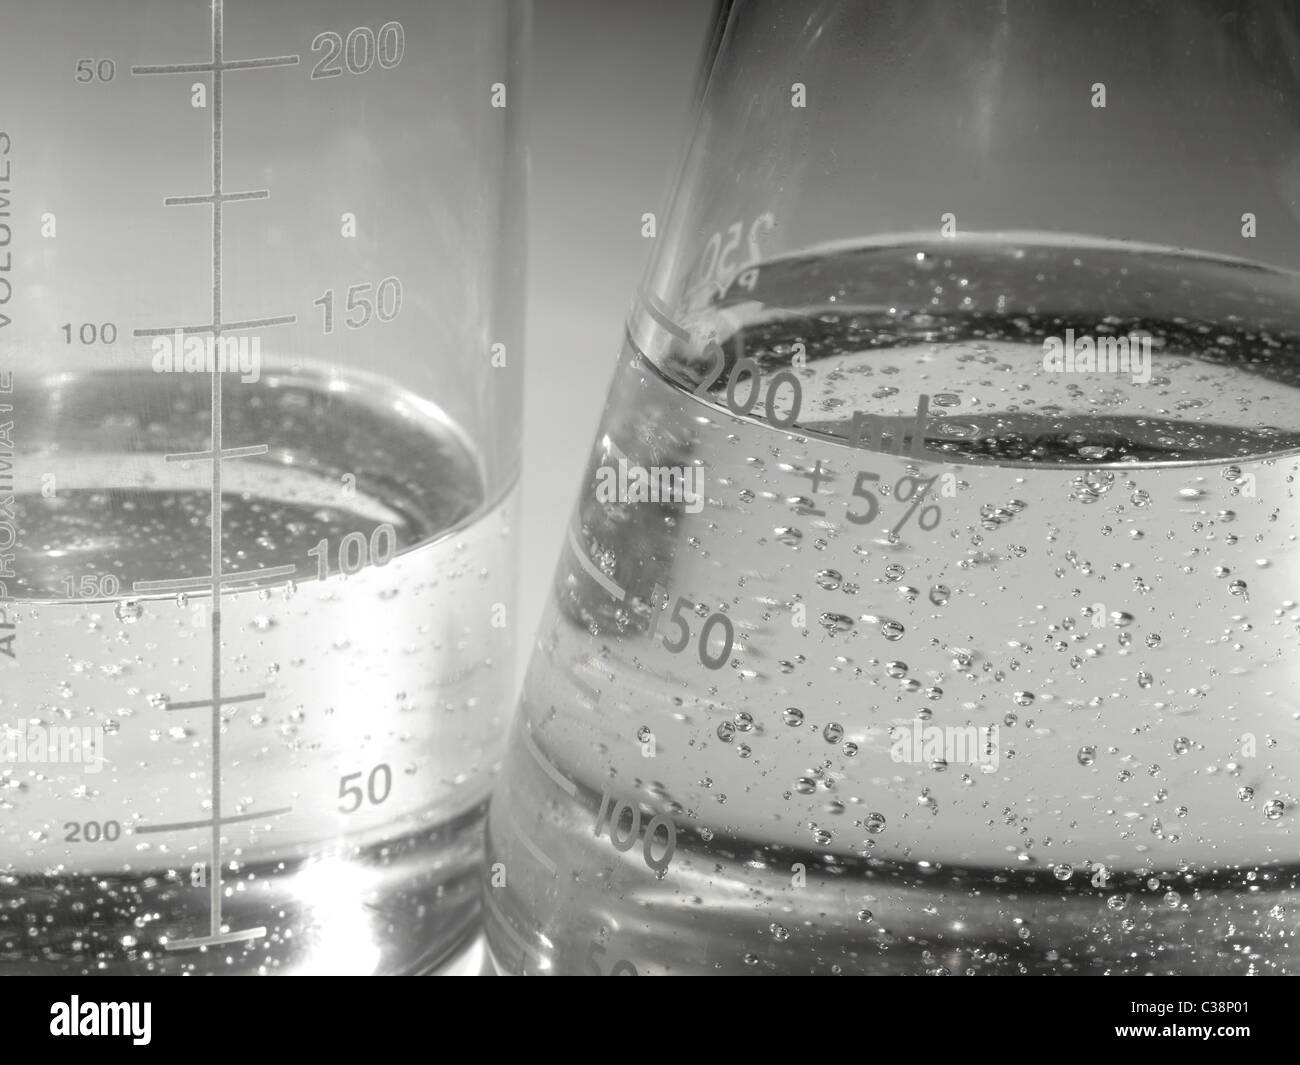 Beakers In Lab With Boiling Liquid & Air Bubbles Stock Photo